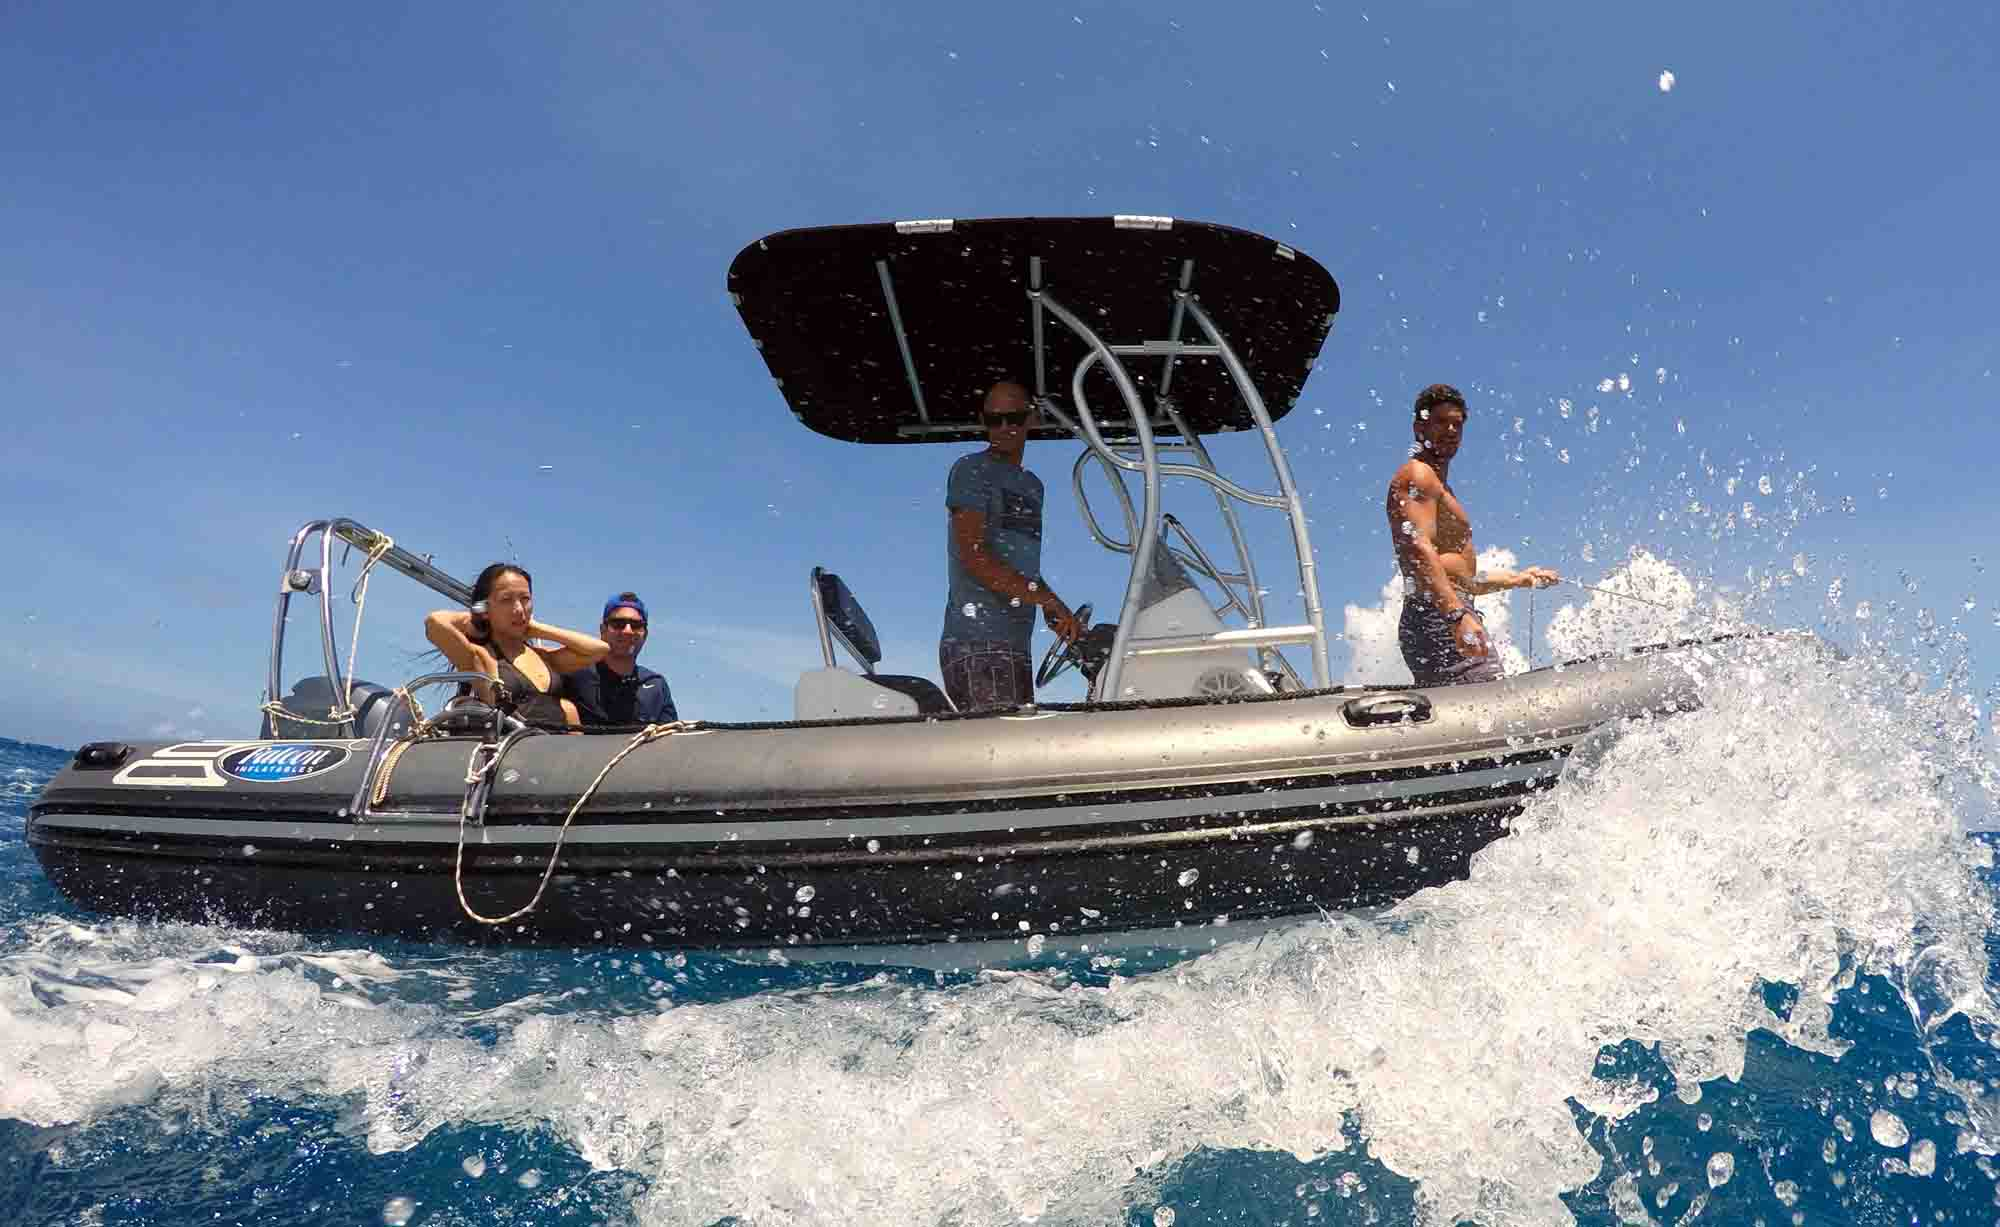 Best private Boat tours Moorea Snorkeling Marine Widlife Whales Sharks Moorea Ocean Adventures